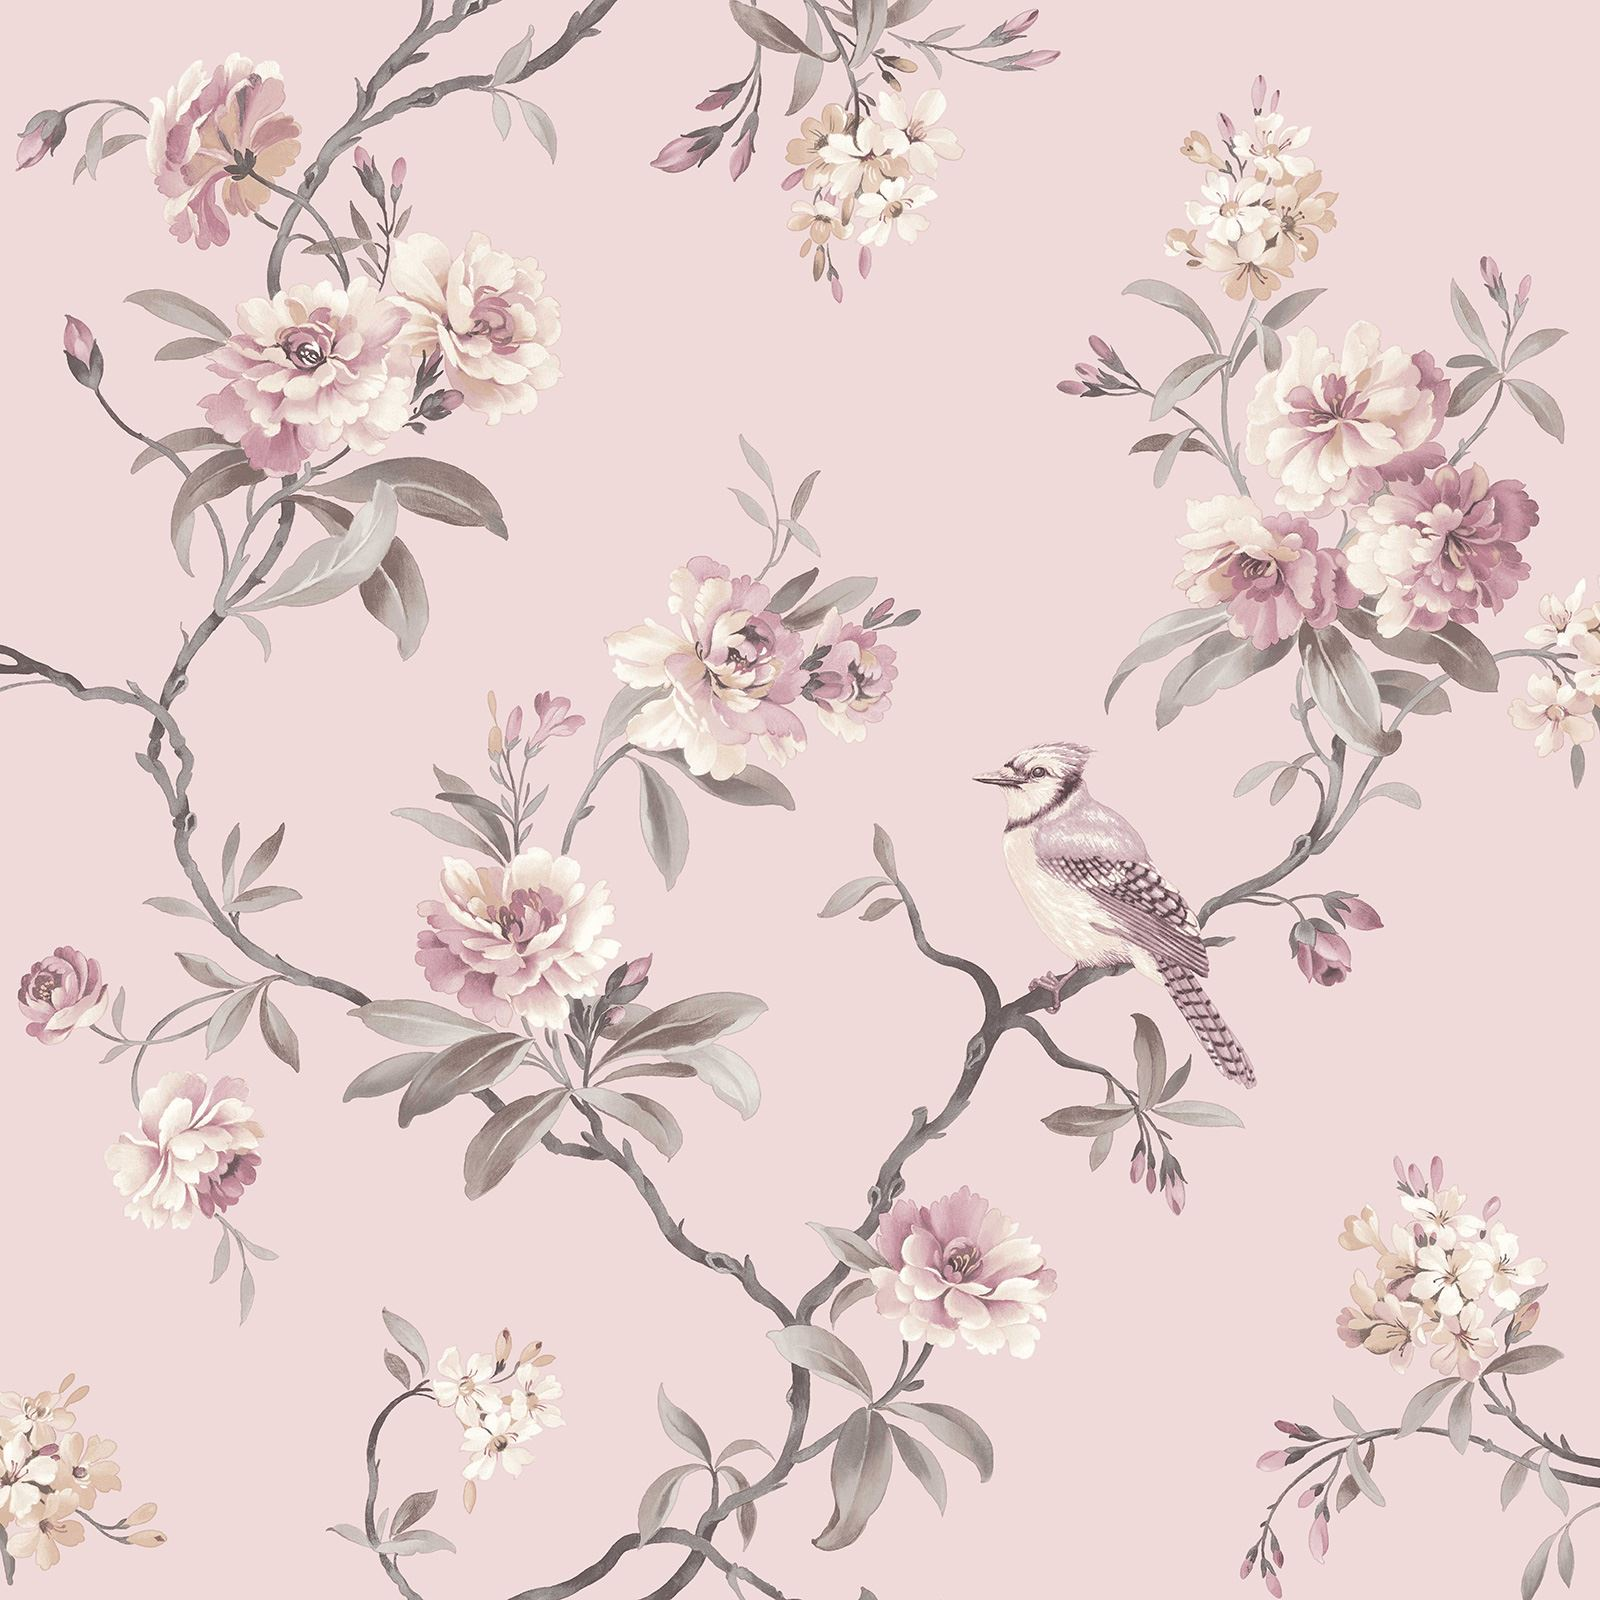 SHABBY CHIC FLORAL WALLPAPER IN VARIOUS DESIGNS WALL DECOR